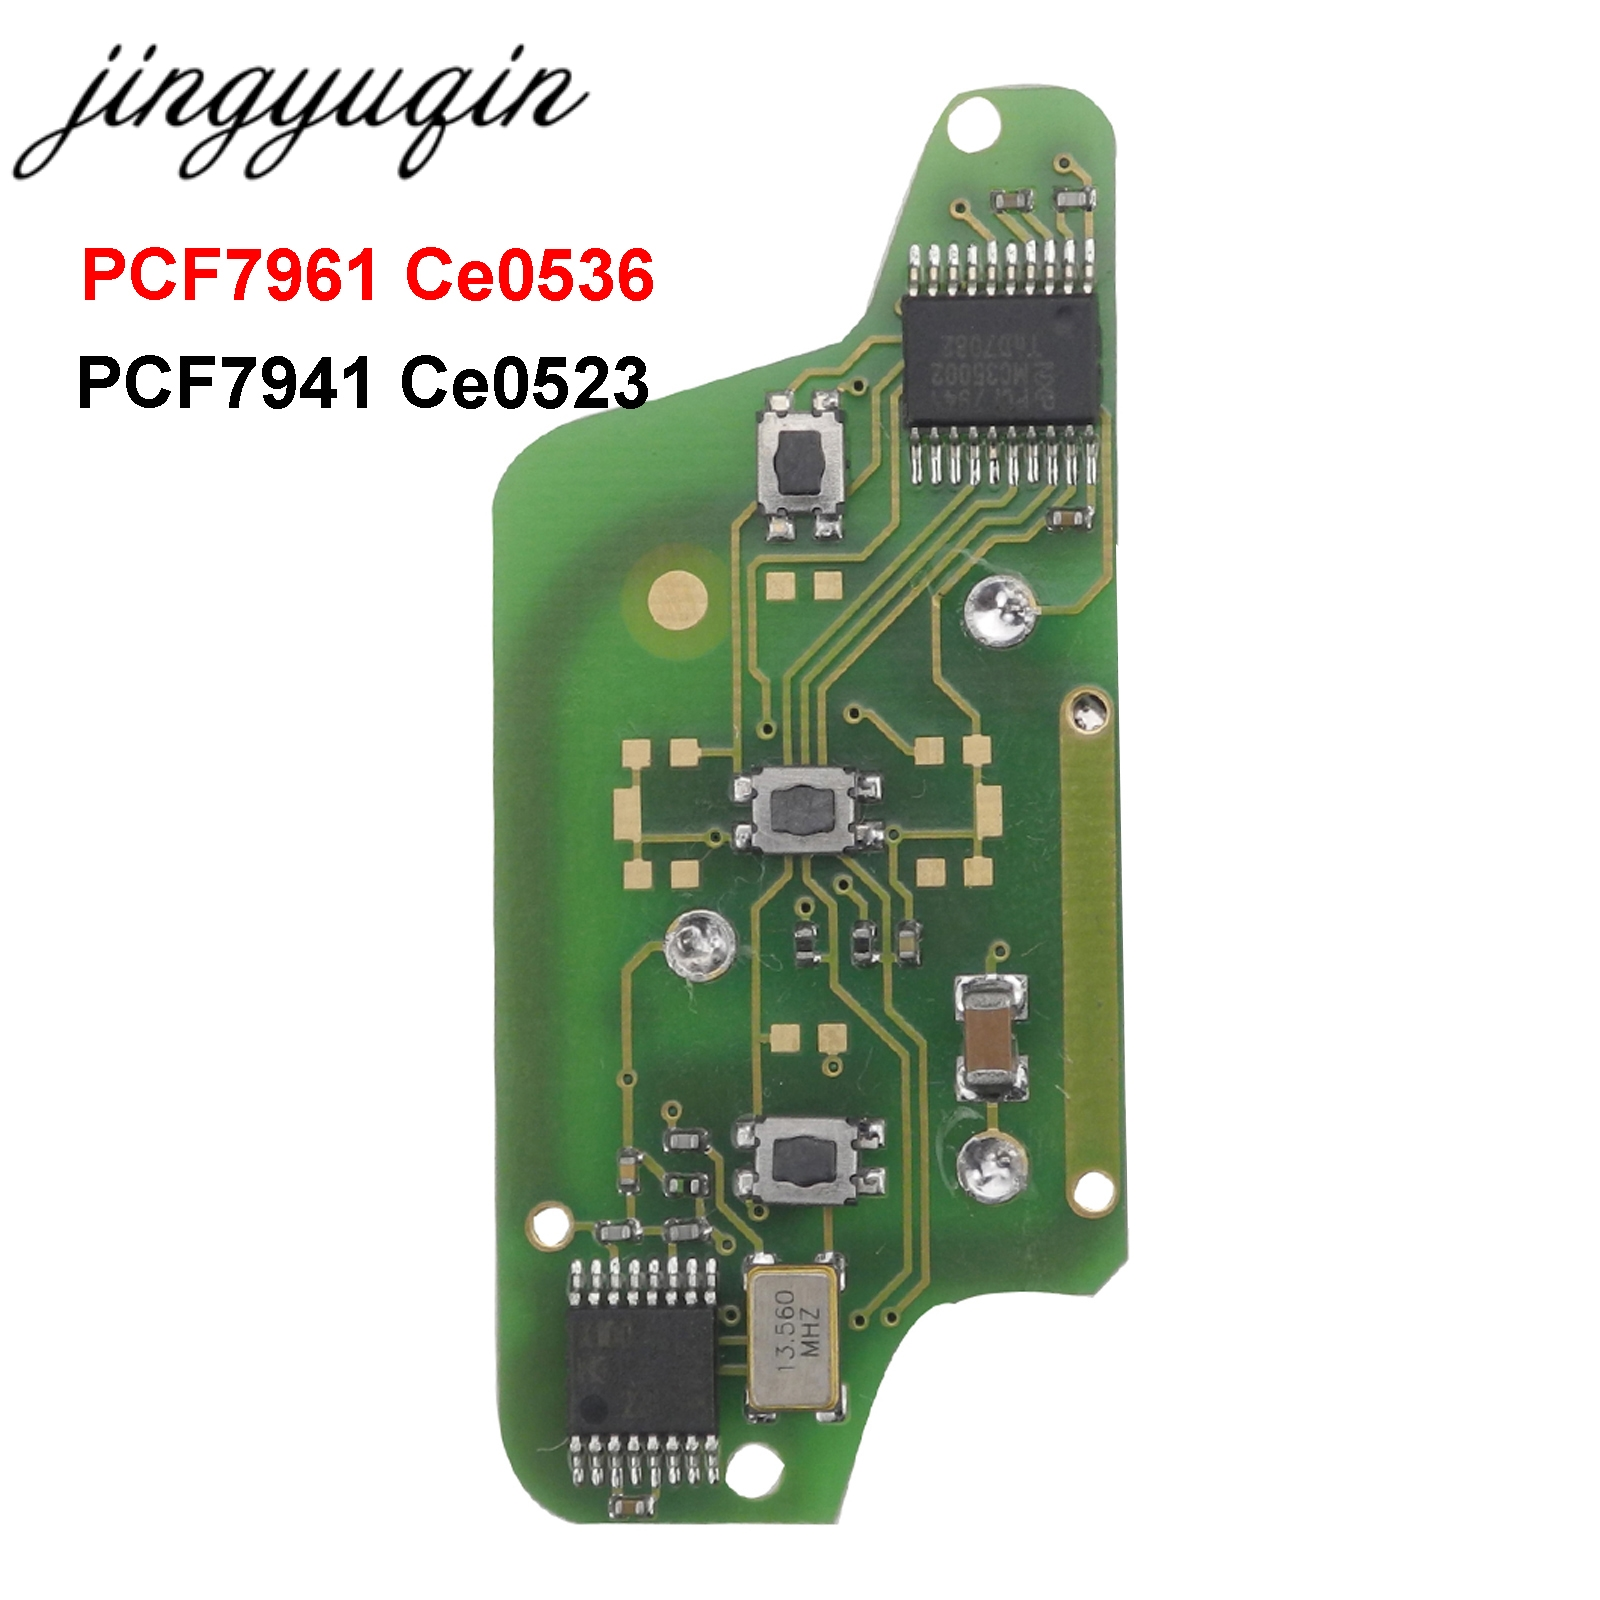 Jingyuqin For Peugeot 407 407 307 308 607 Citroen C2 C3 C4 C5 ASK Remote Key Electronic Circuit Board 3 Buttons CE0523 Ce0536